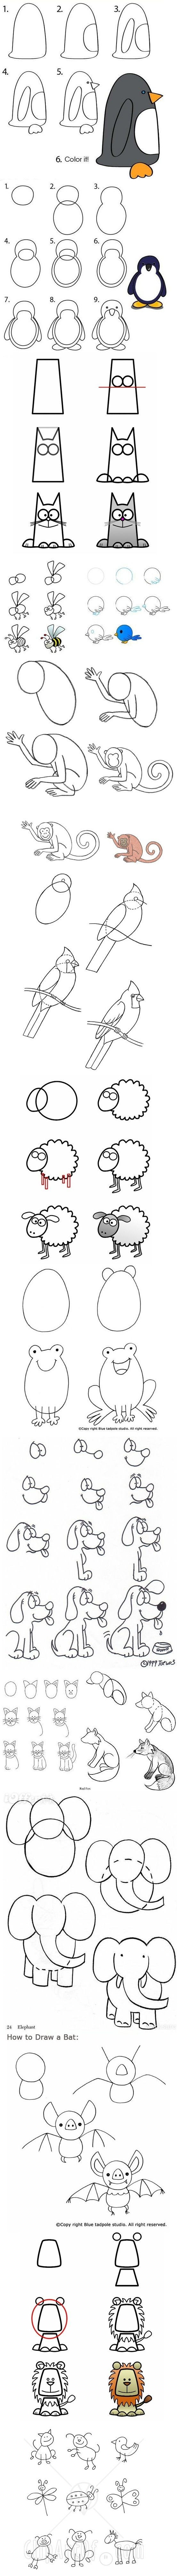 How to draw..cute, just use the simple mass element for shape, and fill radom fillers